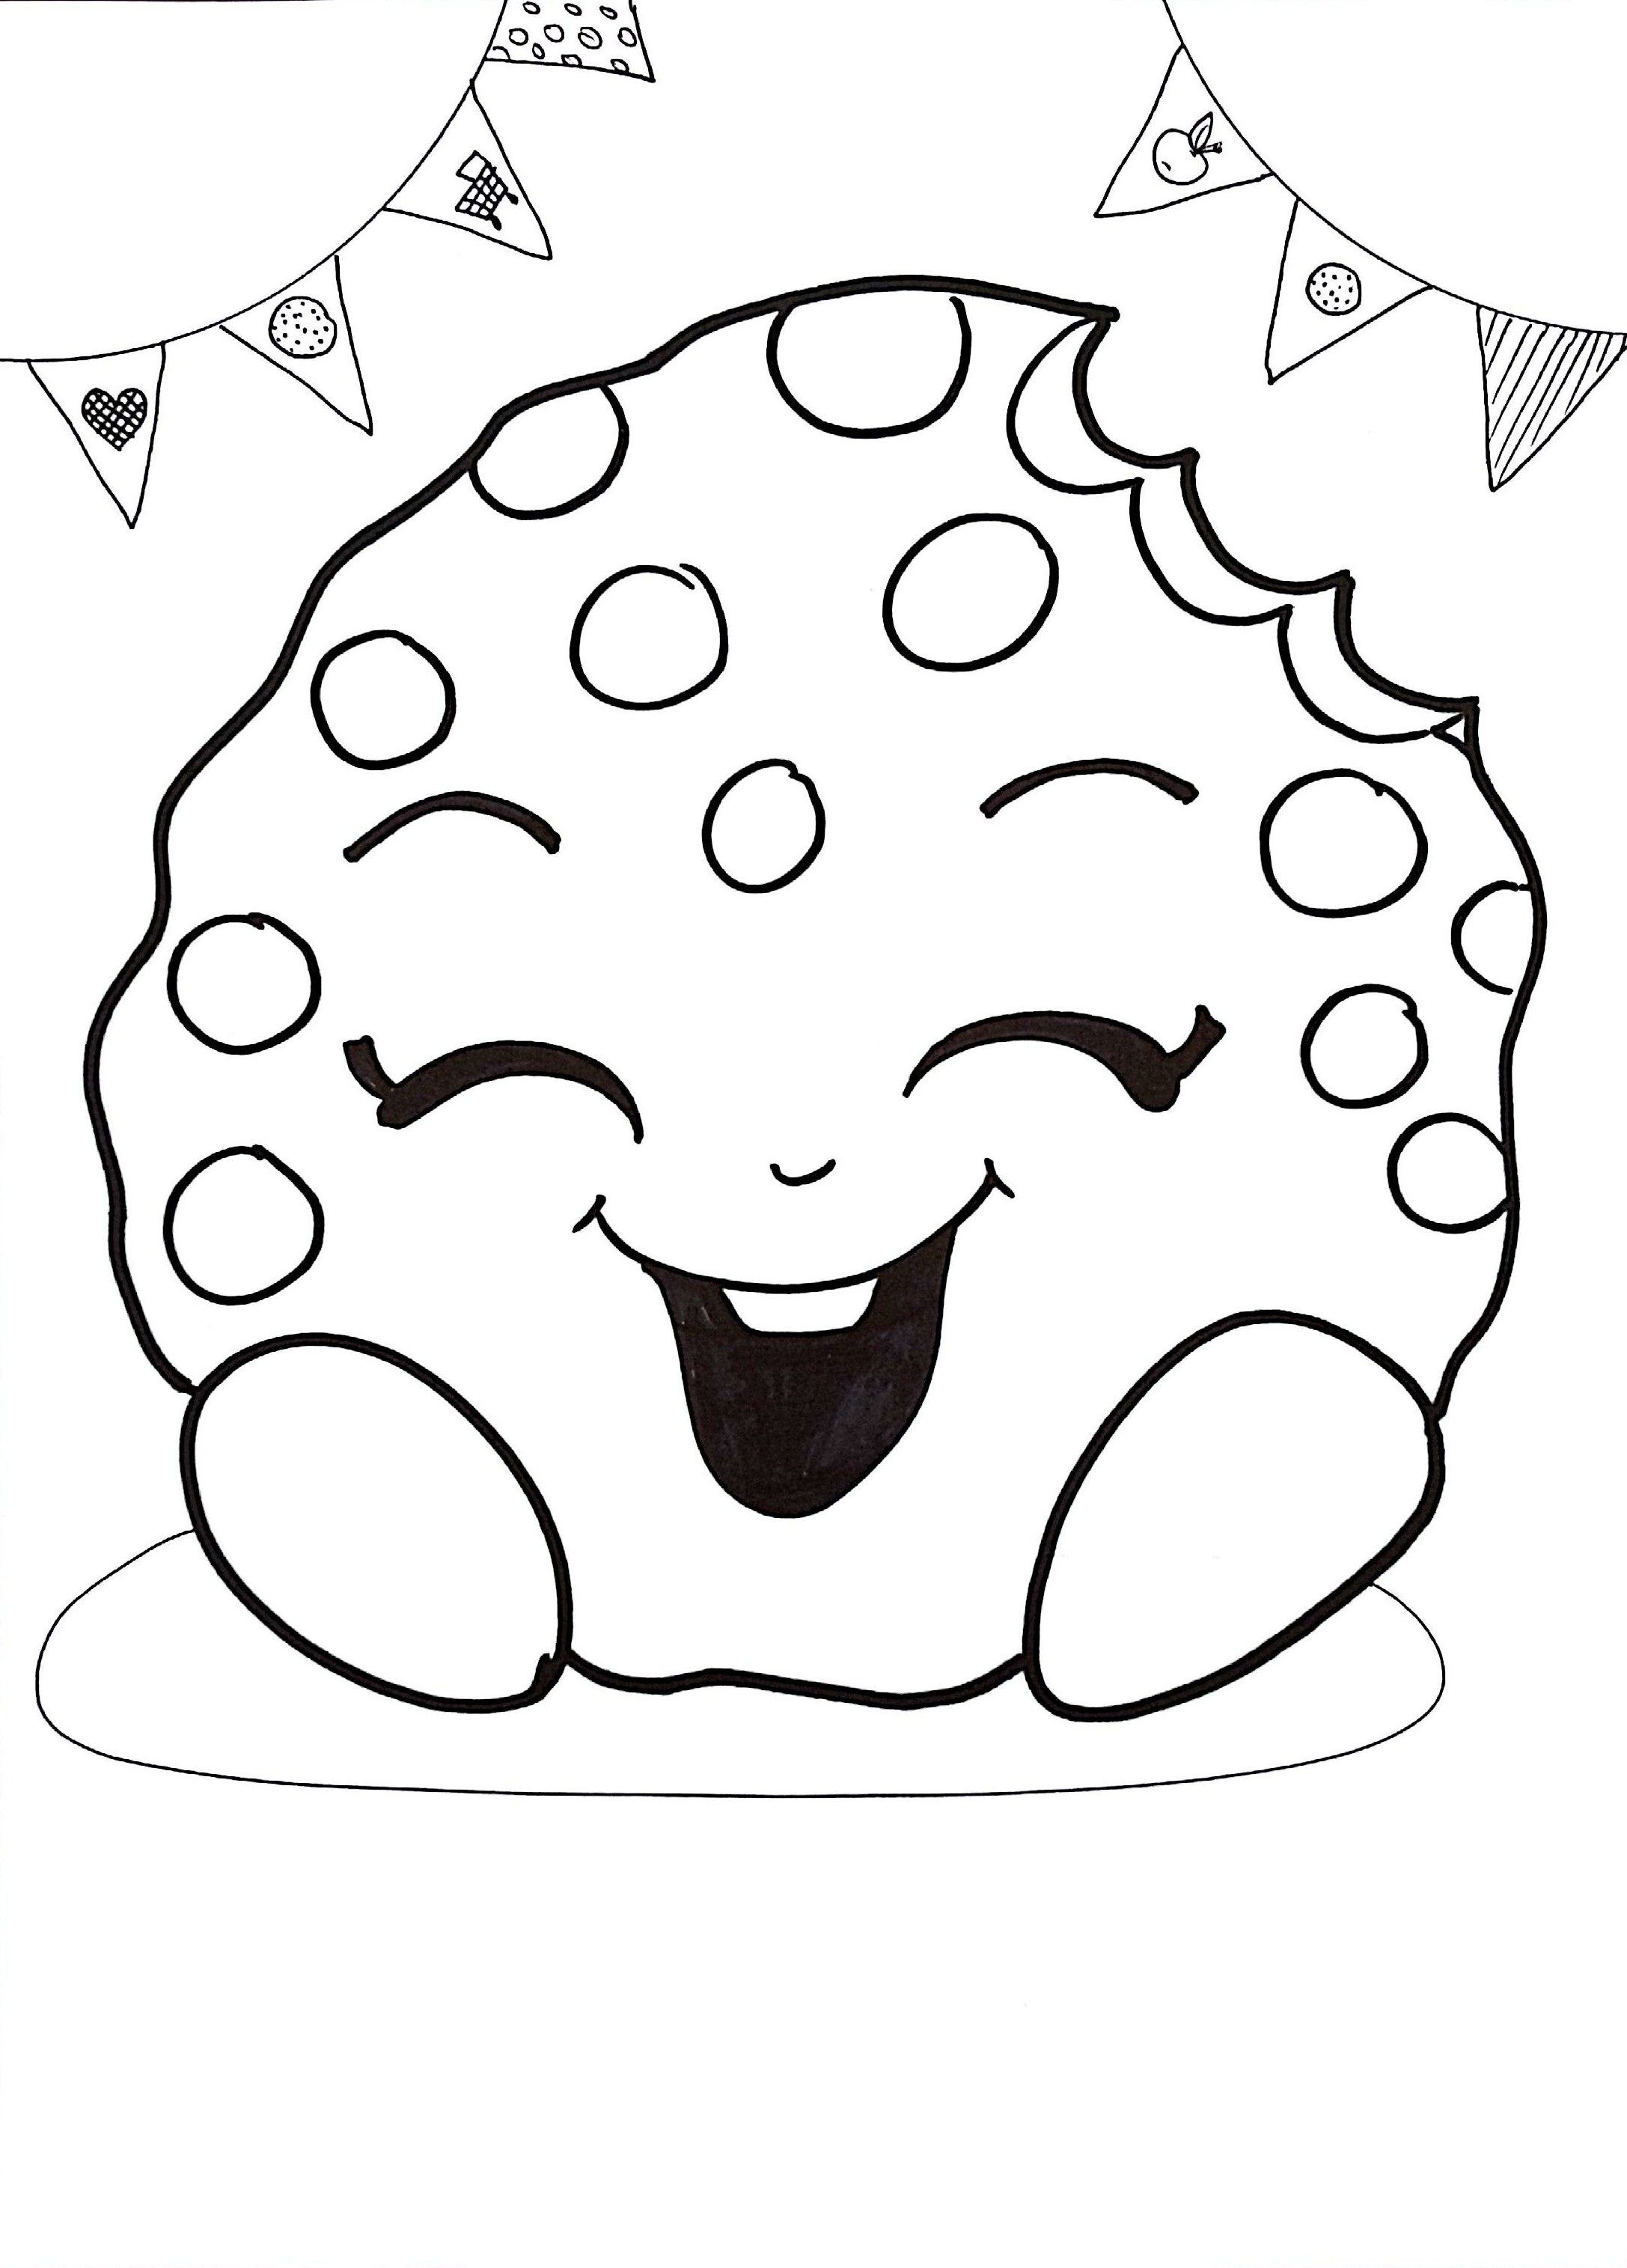 Free Shopkins Coloring Page Picture Shopkin Coloring Pages Shopkins Colouring Pages Coloring Books